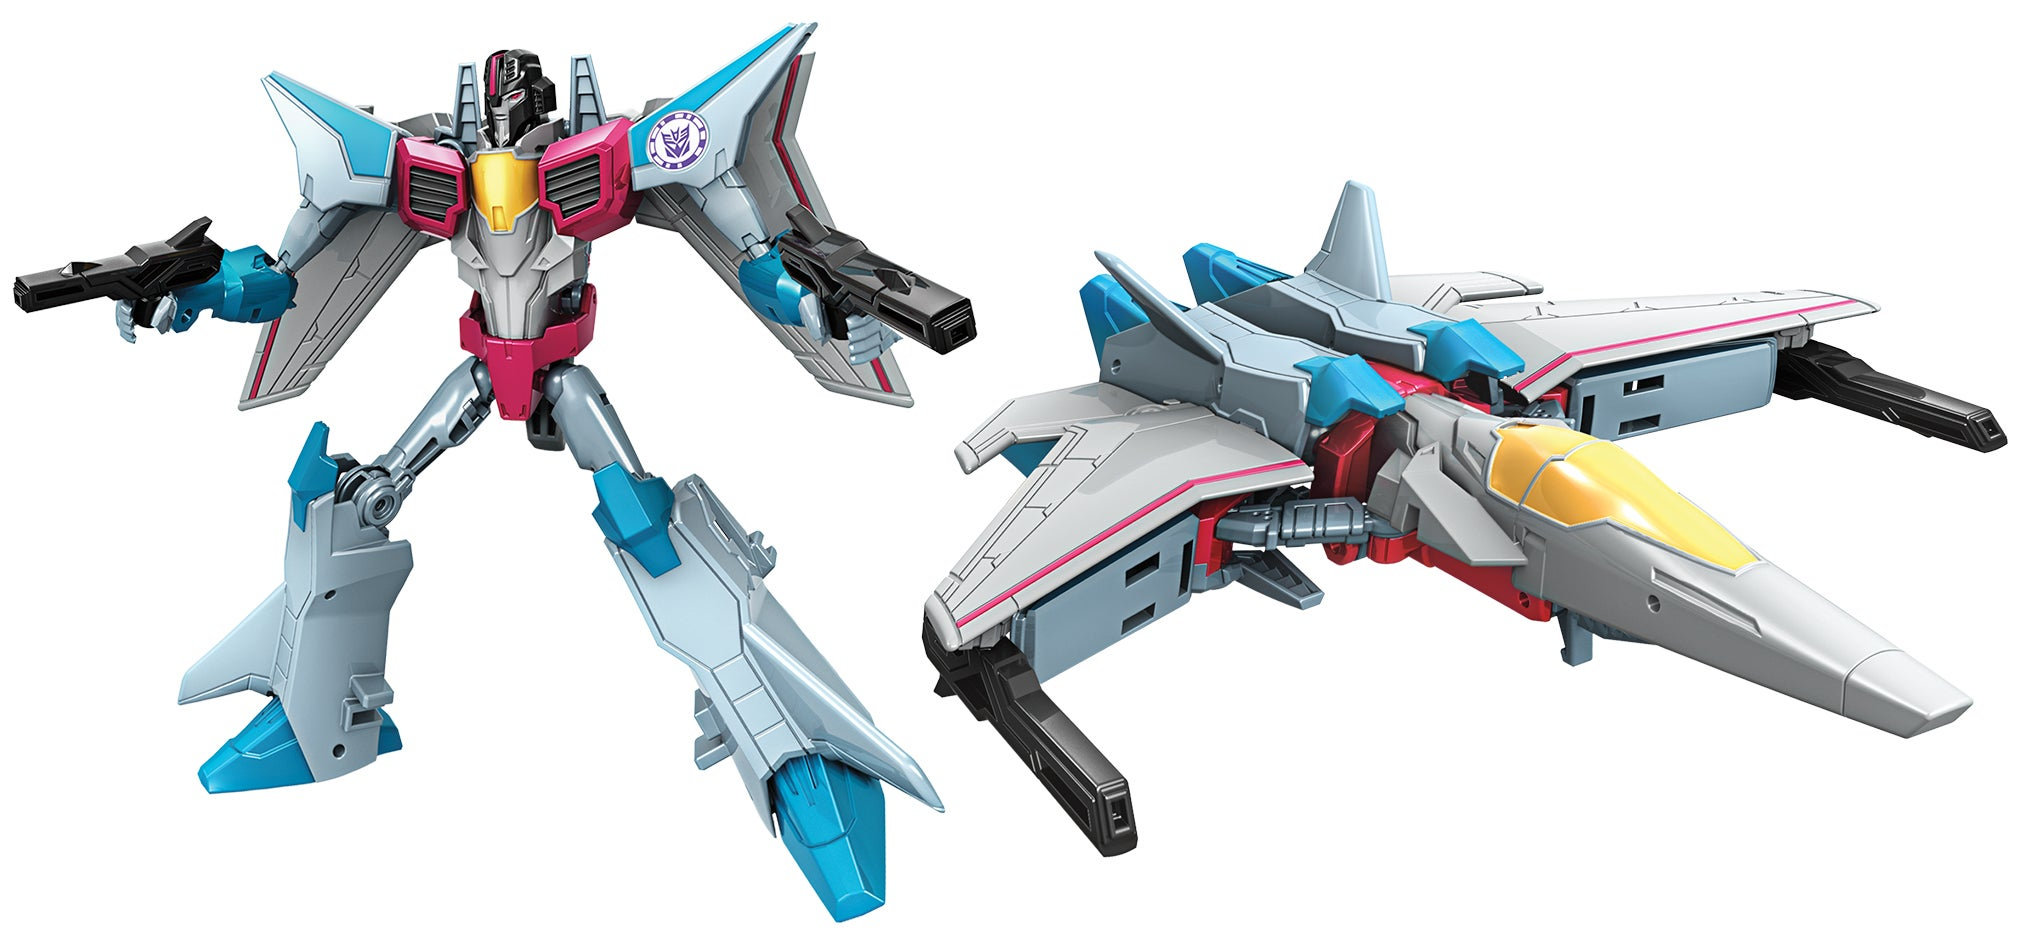 The New Robots In Disguise Toys Are Inspired By The '80s Transformers You Grew Up With